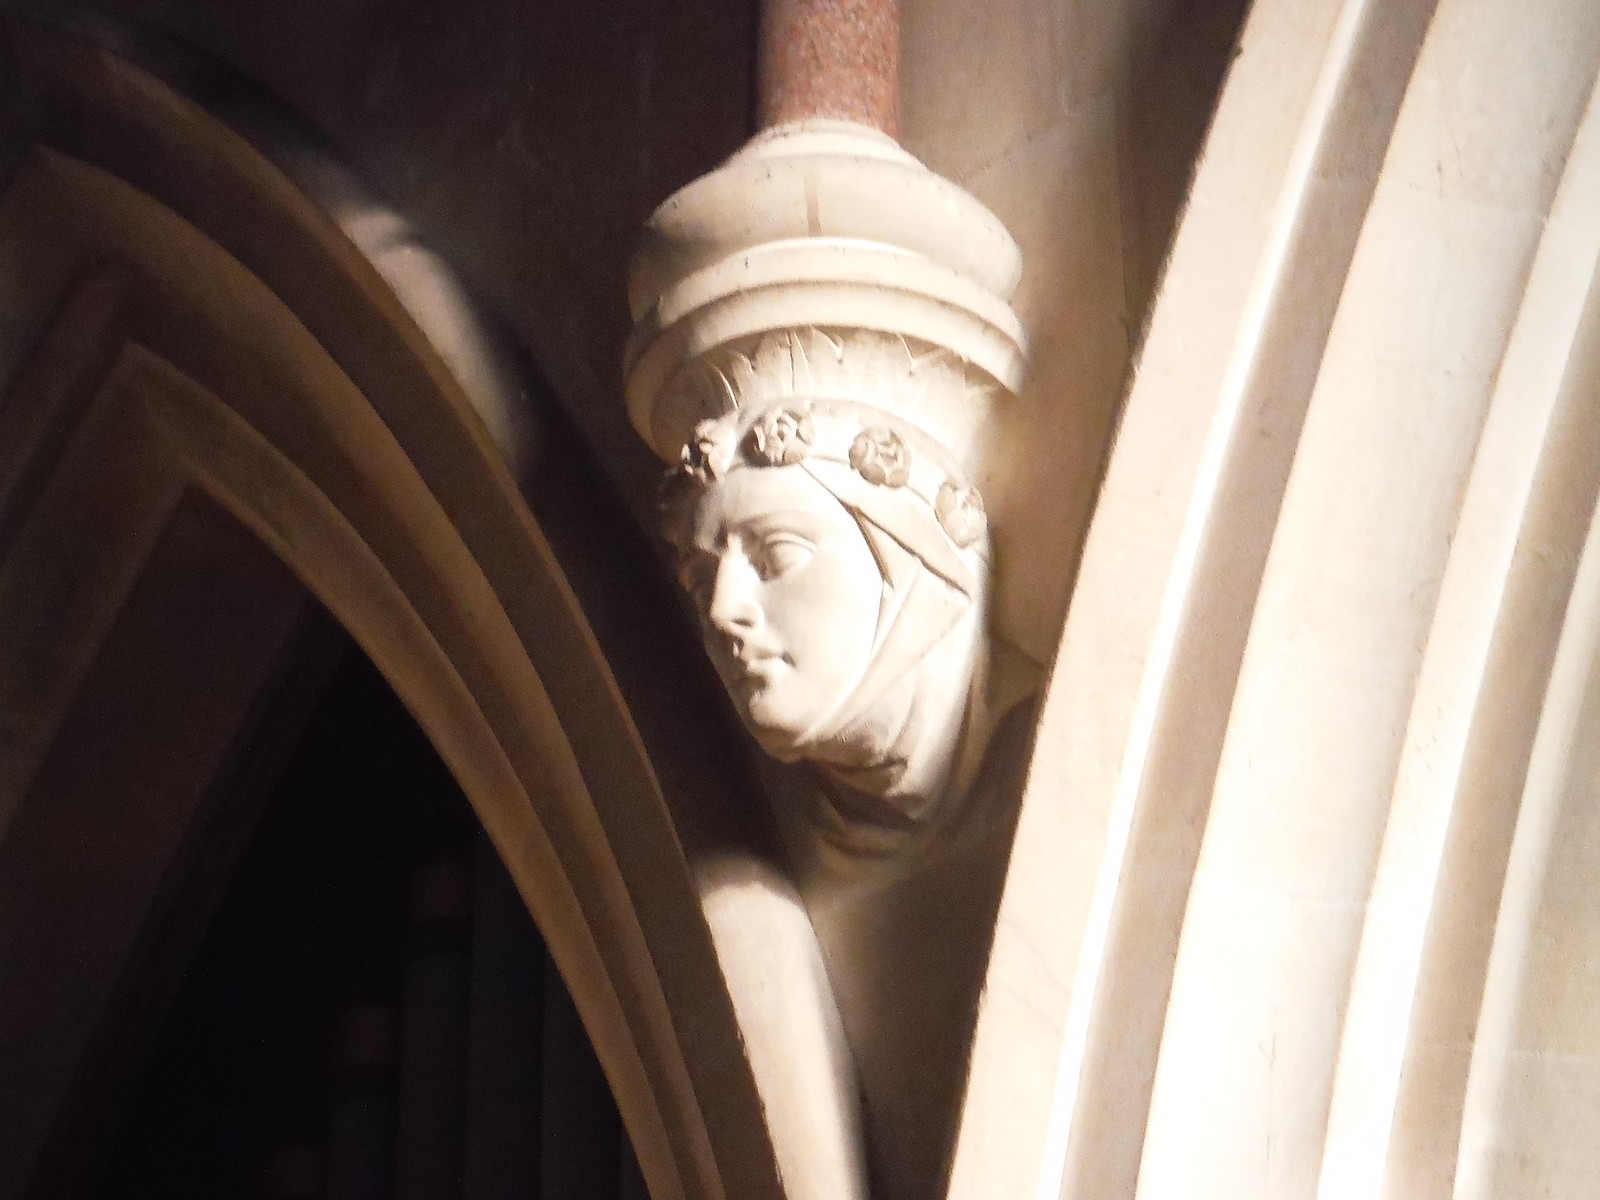 Corbel in St. Matthew's, Midgham SWC Walk 117 Aldermaston to Woolhampton (via Stanford Dingley)